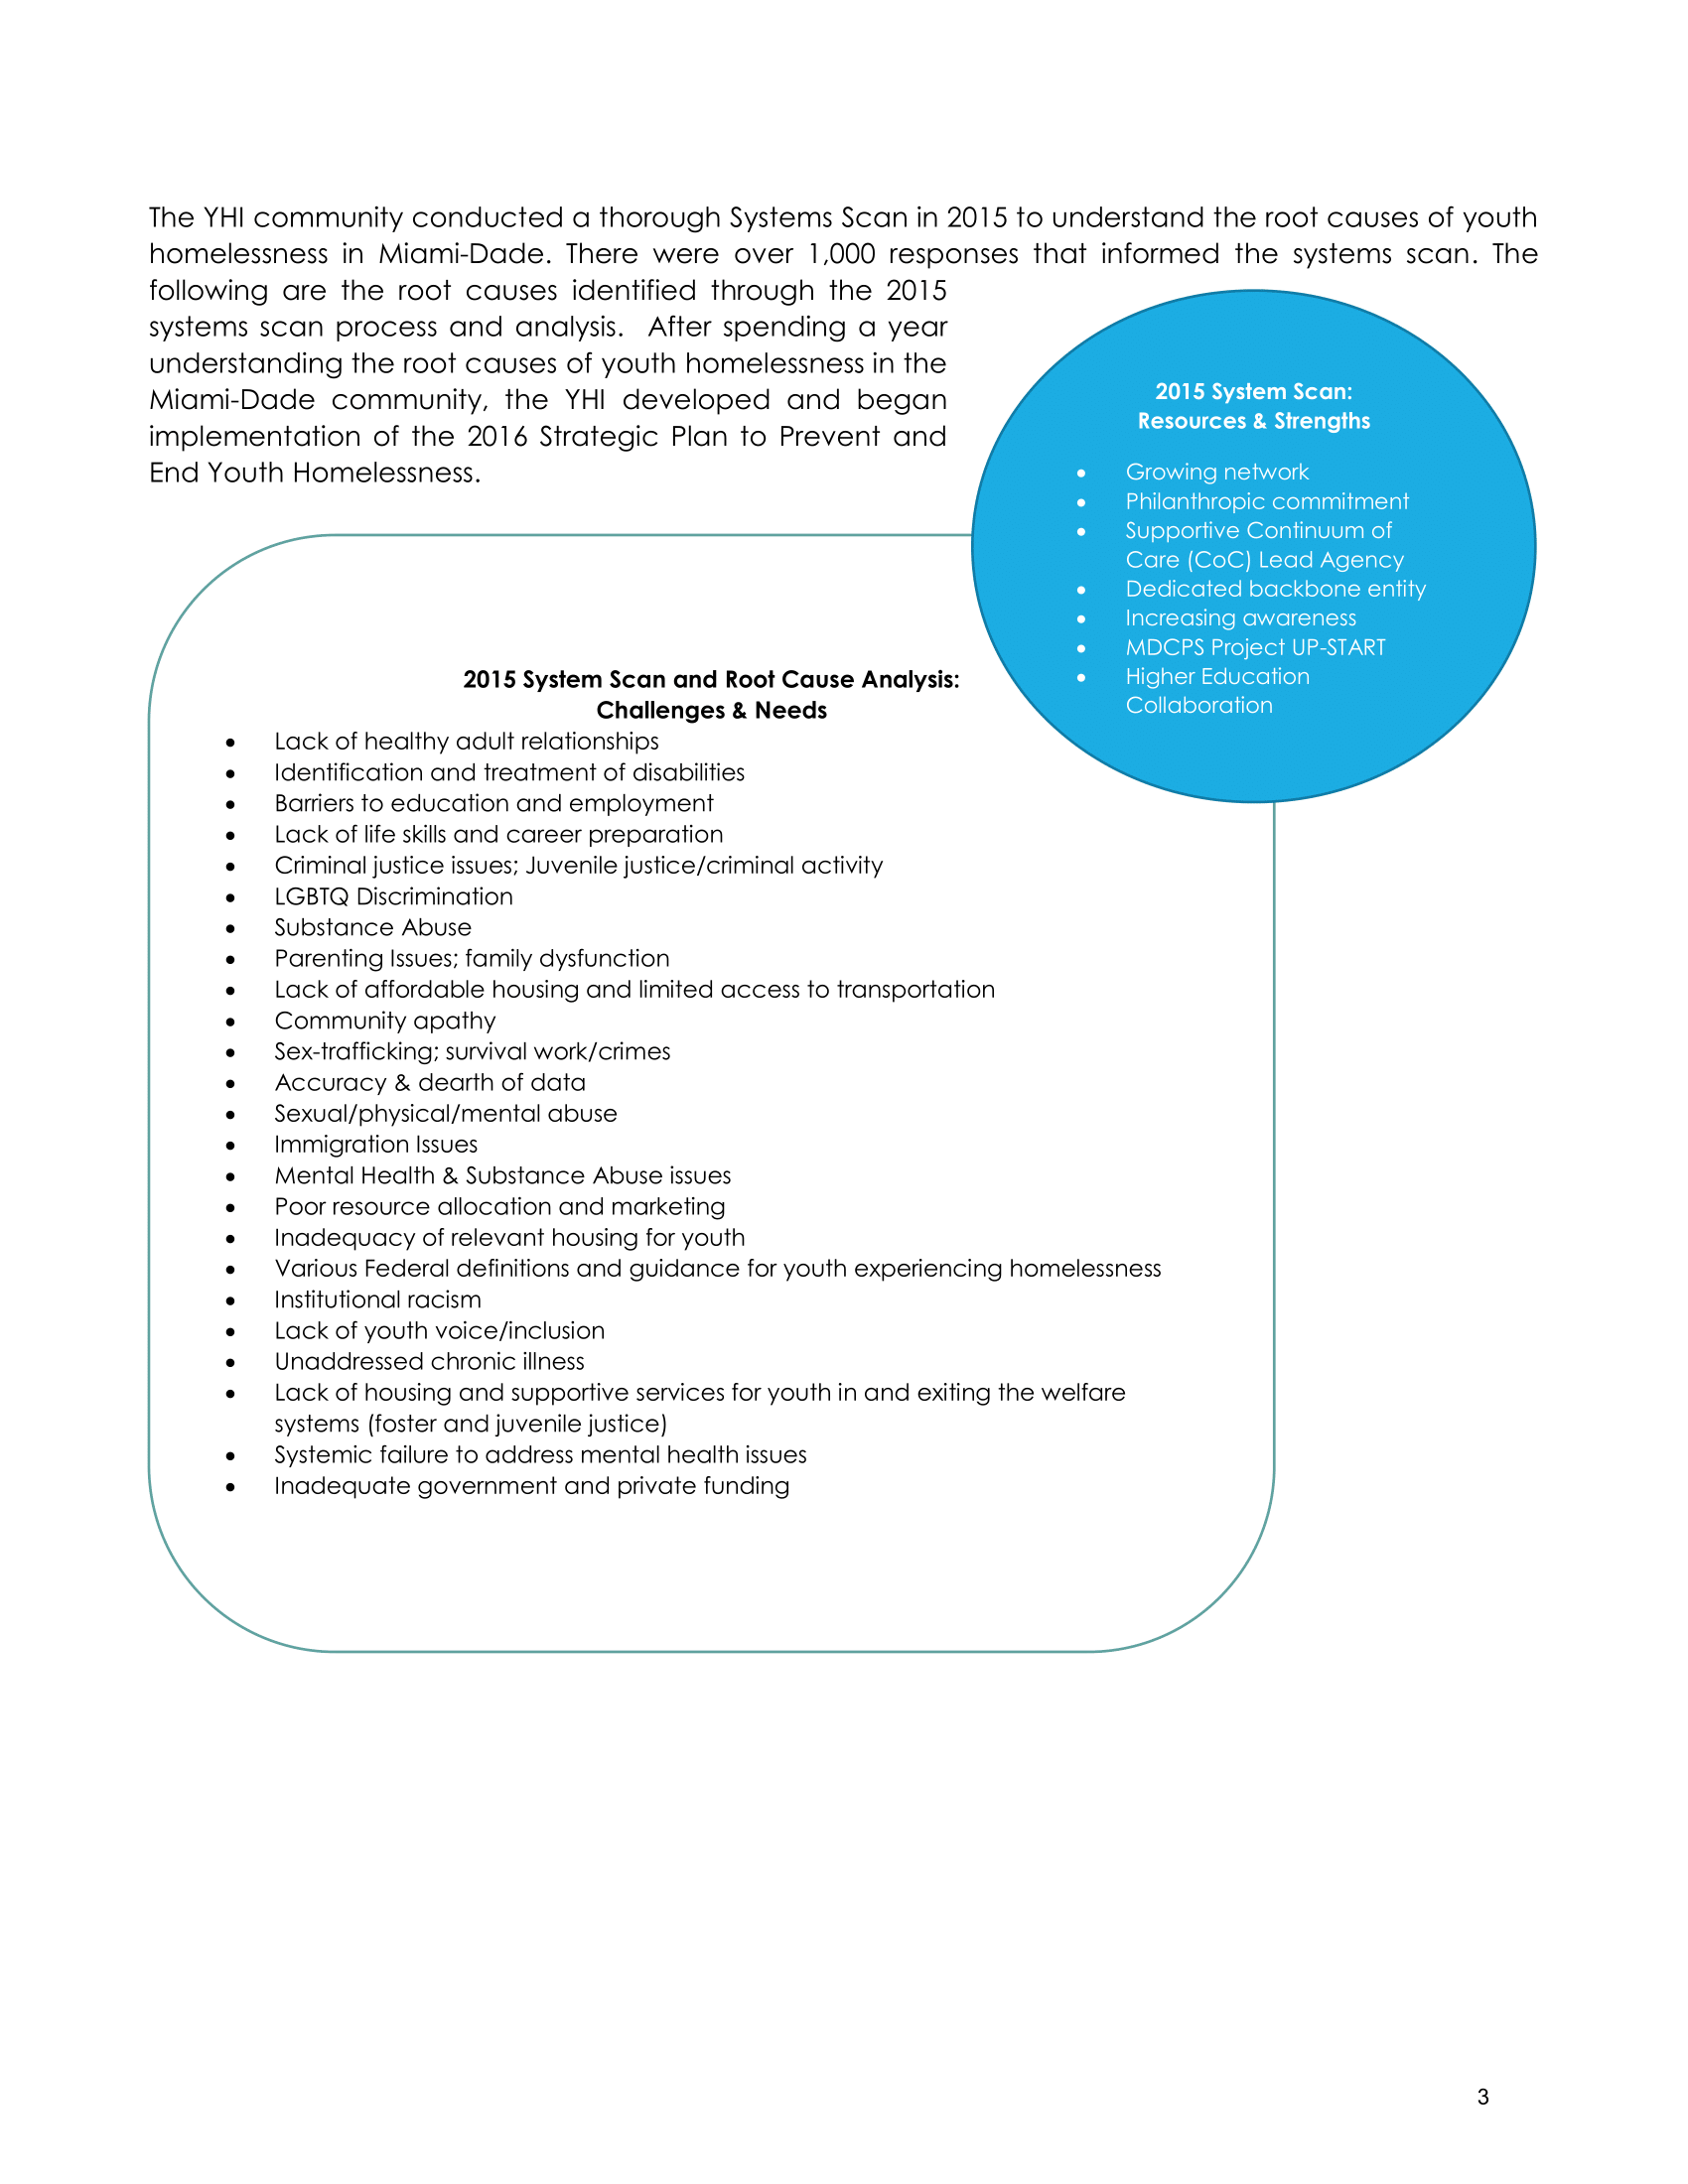 Comprehensive Plan to End and Prevent Homelessness in Miami-Dade County - December 2017-08.png